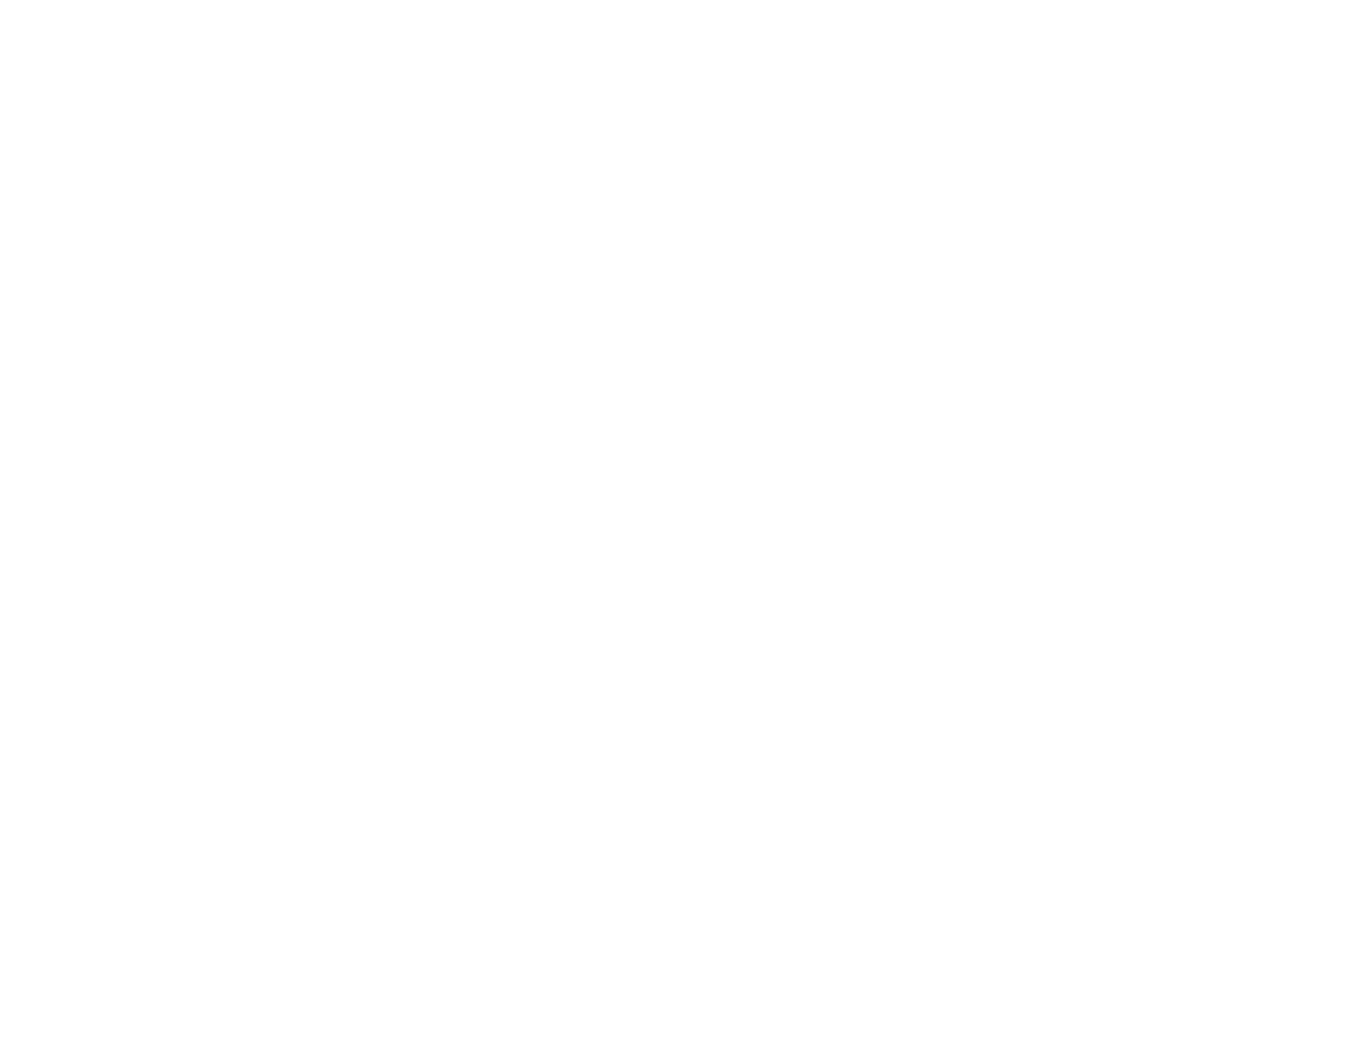 Spirit Empowered, Biblically Trained Leaders are the Hope of Africa